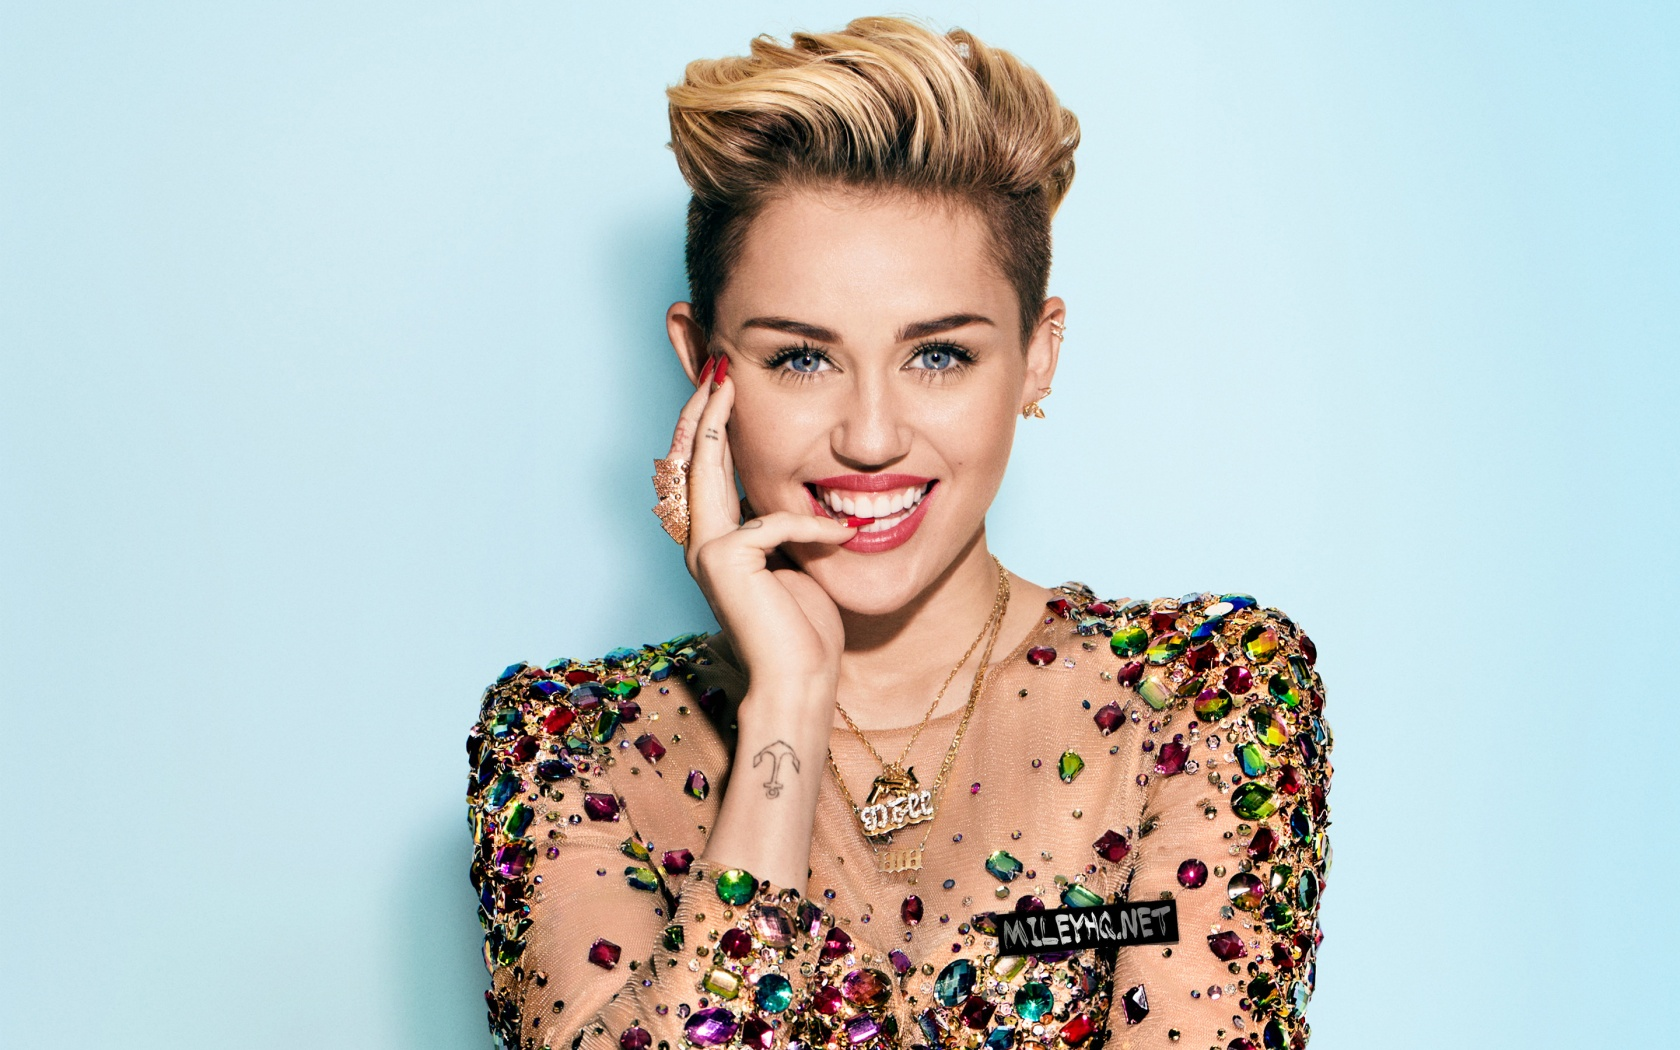 Miley Cyrus 83 Wallpapers HD Wallpapers 1680x1050